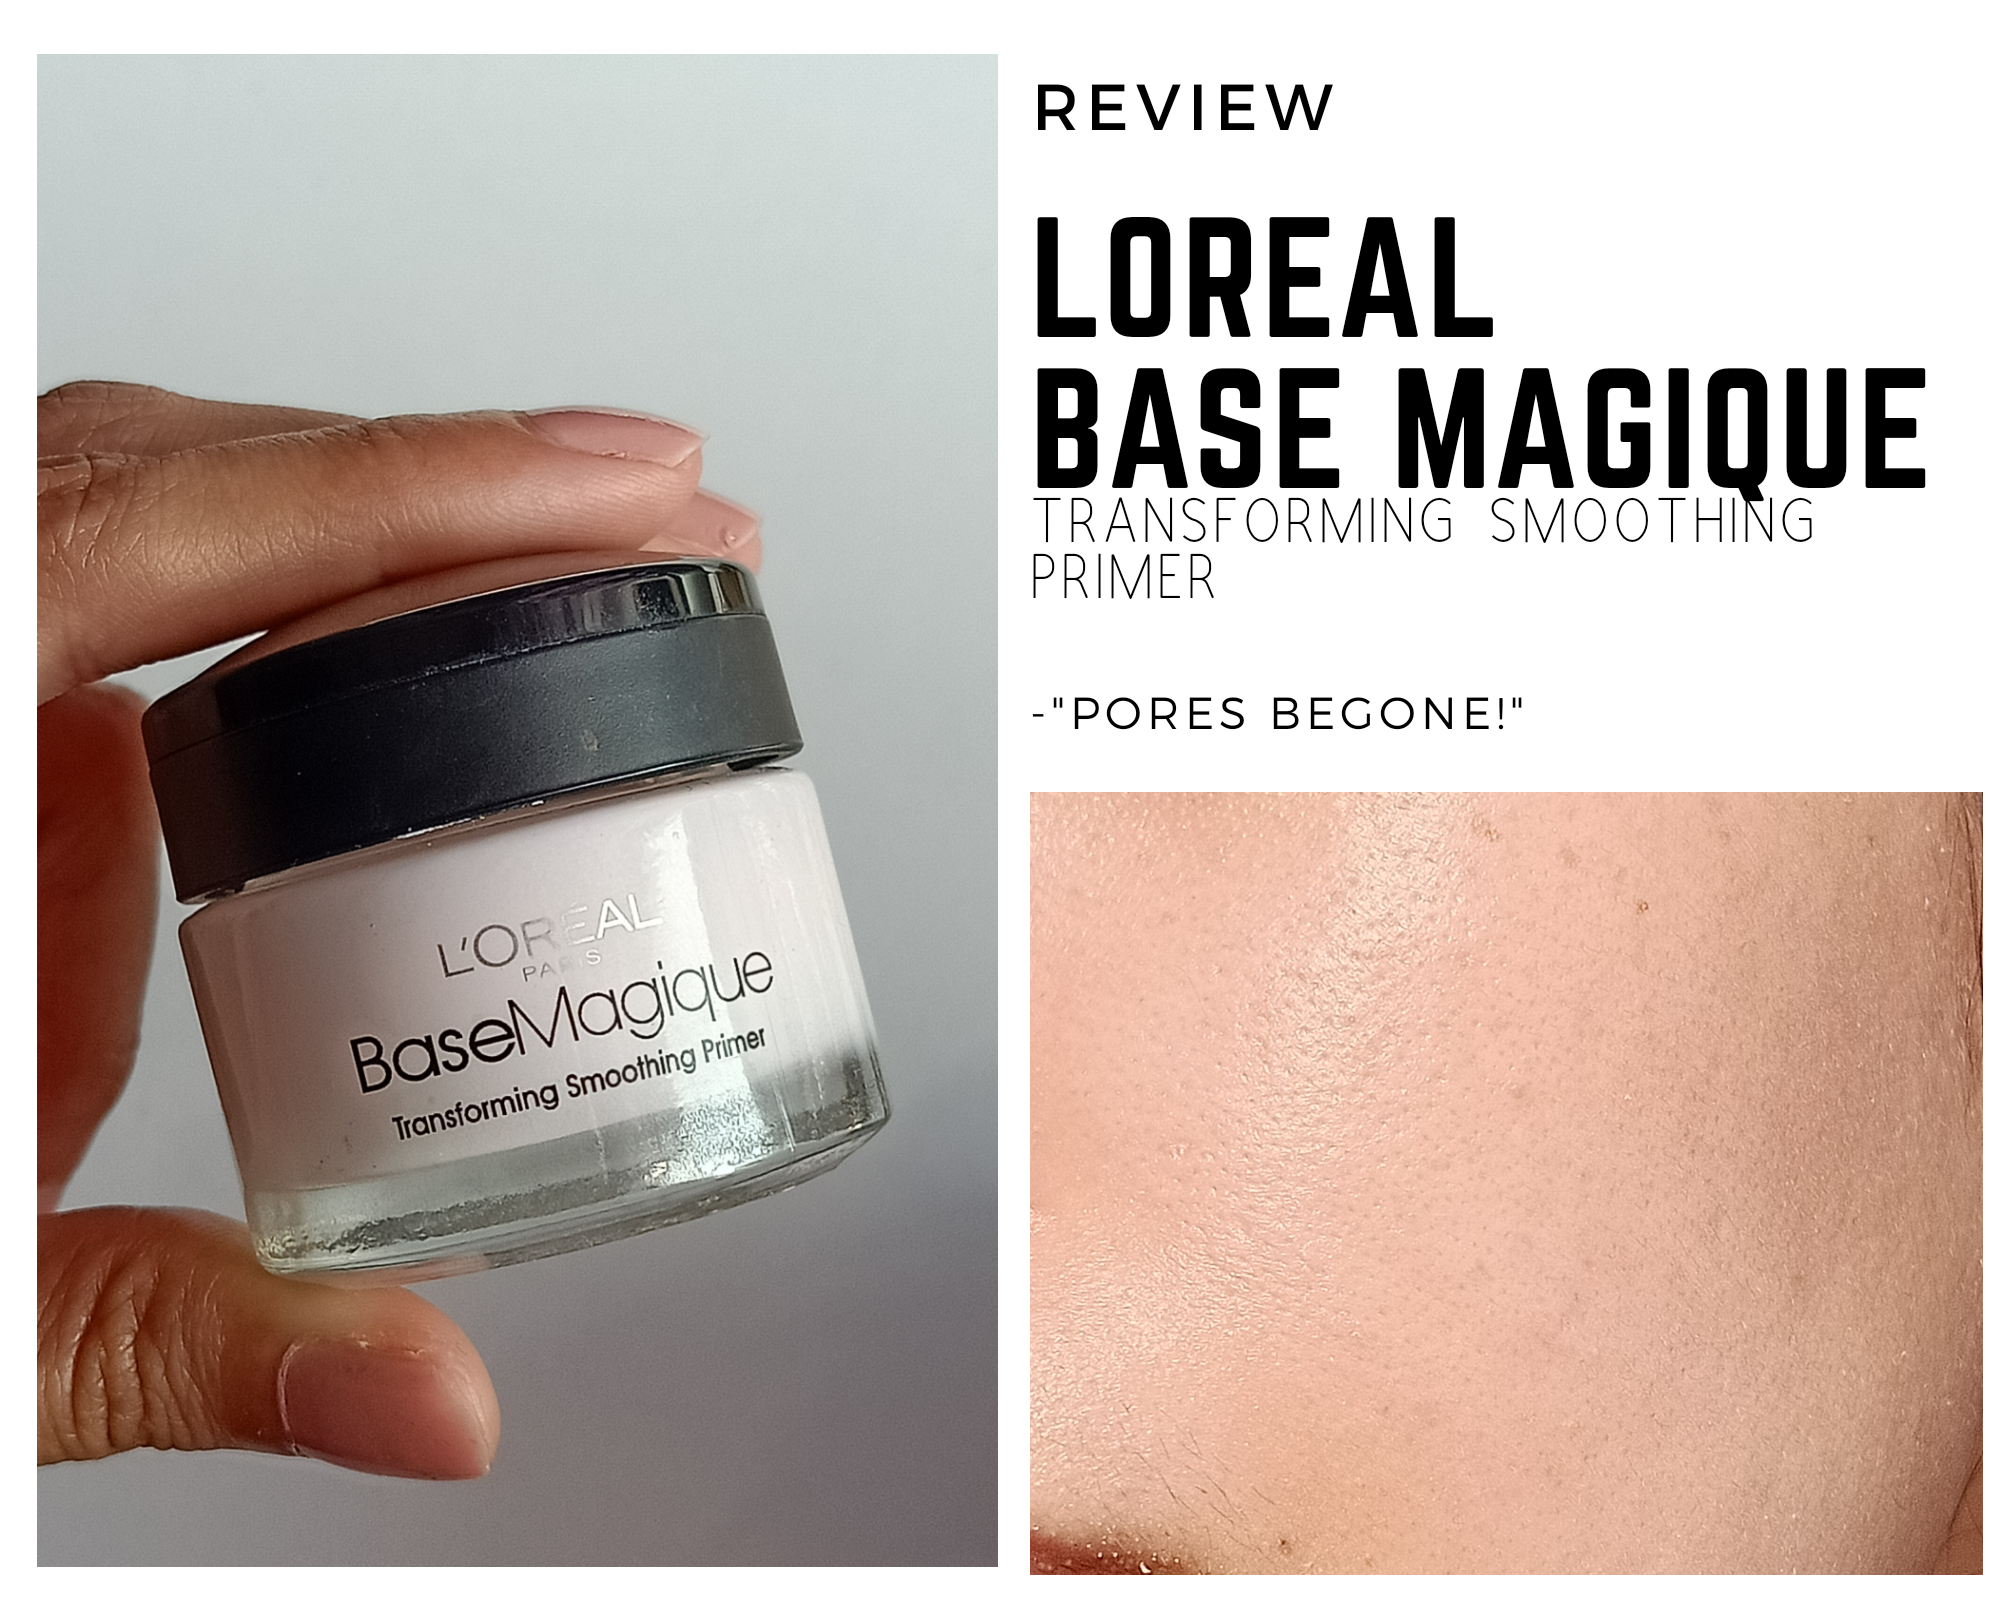 REVIEW | Loreal Magique Transforming Smoothing Primer